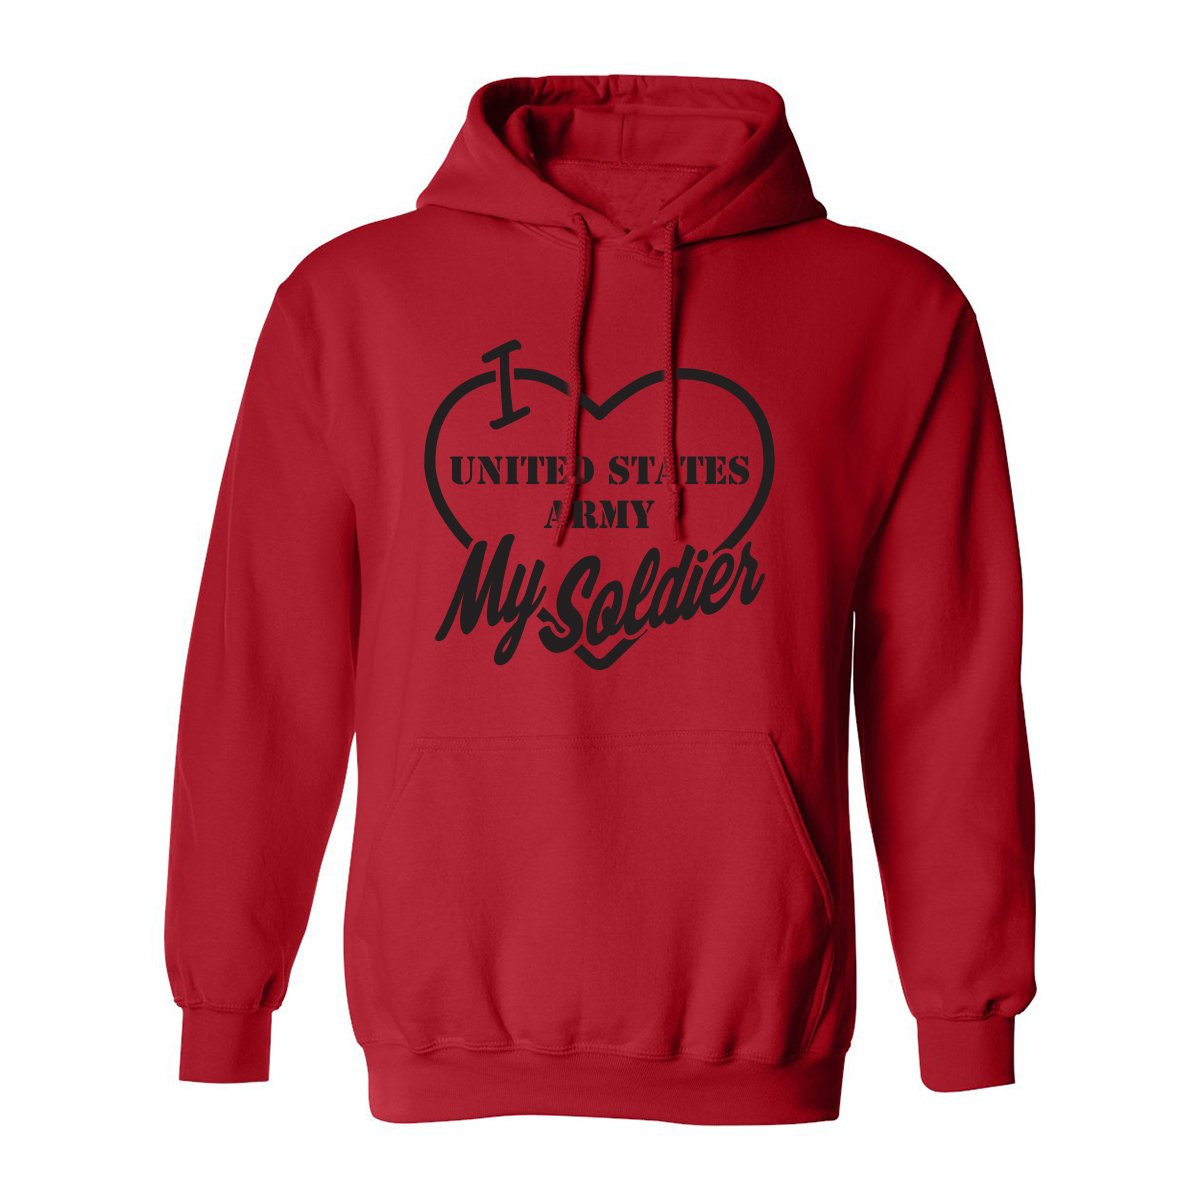 I Love My Soldier (Army) Adult Hooded Sweatshirt in Red - XXXX-Large